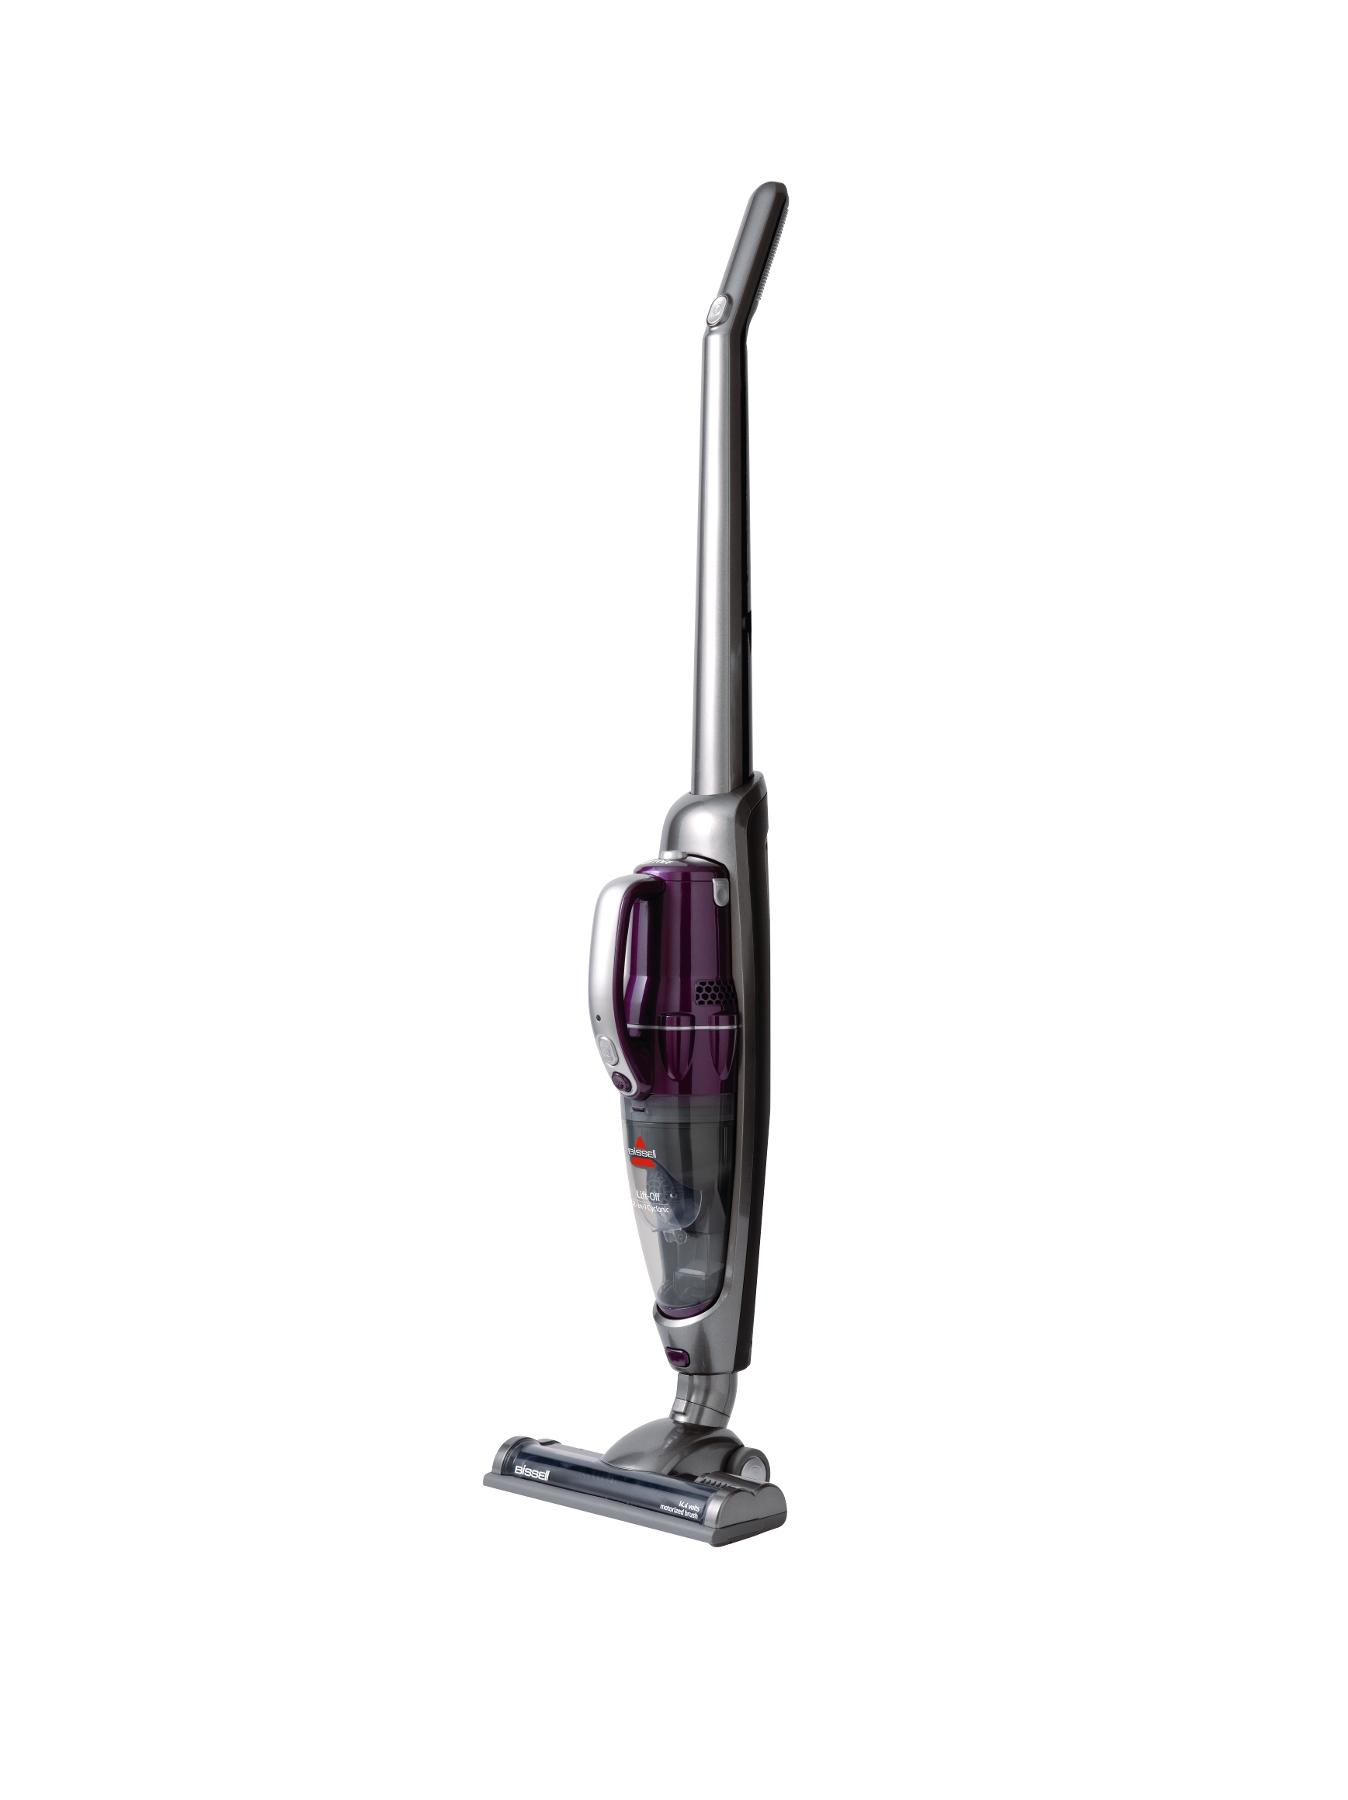 2-in-1 Cyclonic Cordless Stick Vacuum Cleaner